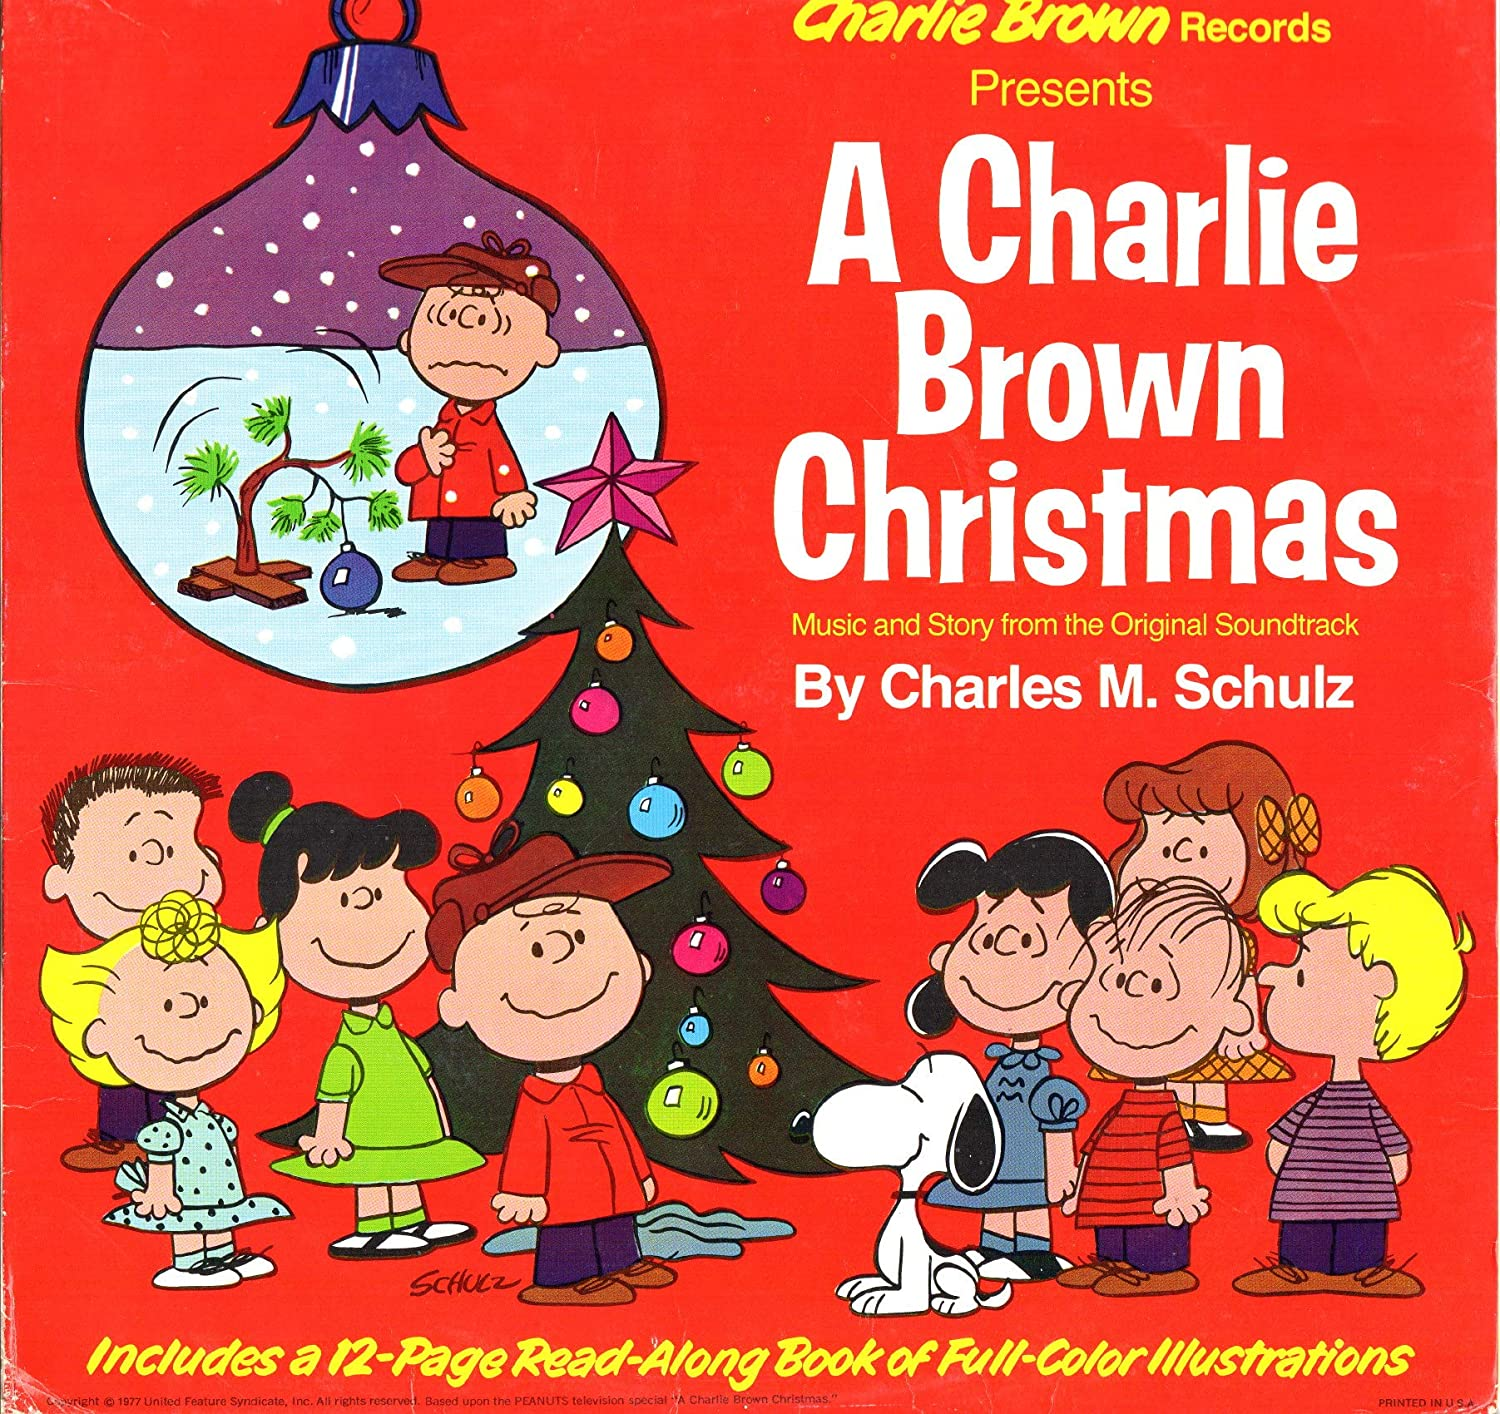 A Charlie Brown Christmas Book.A Charlie Brown Christmas Music Story From The Originial Soundtrack By Charles M Schulz